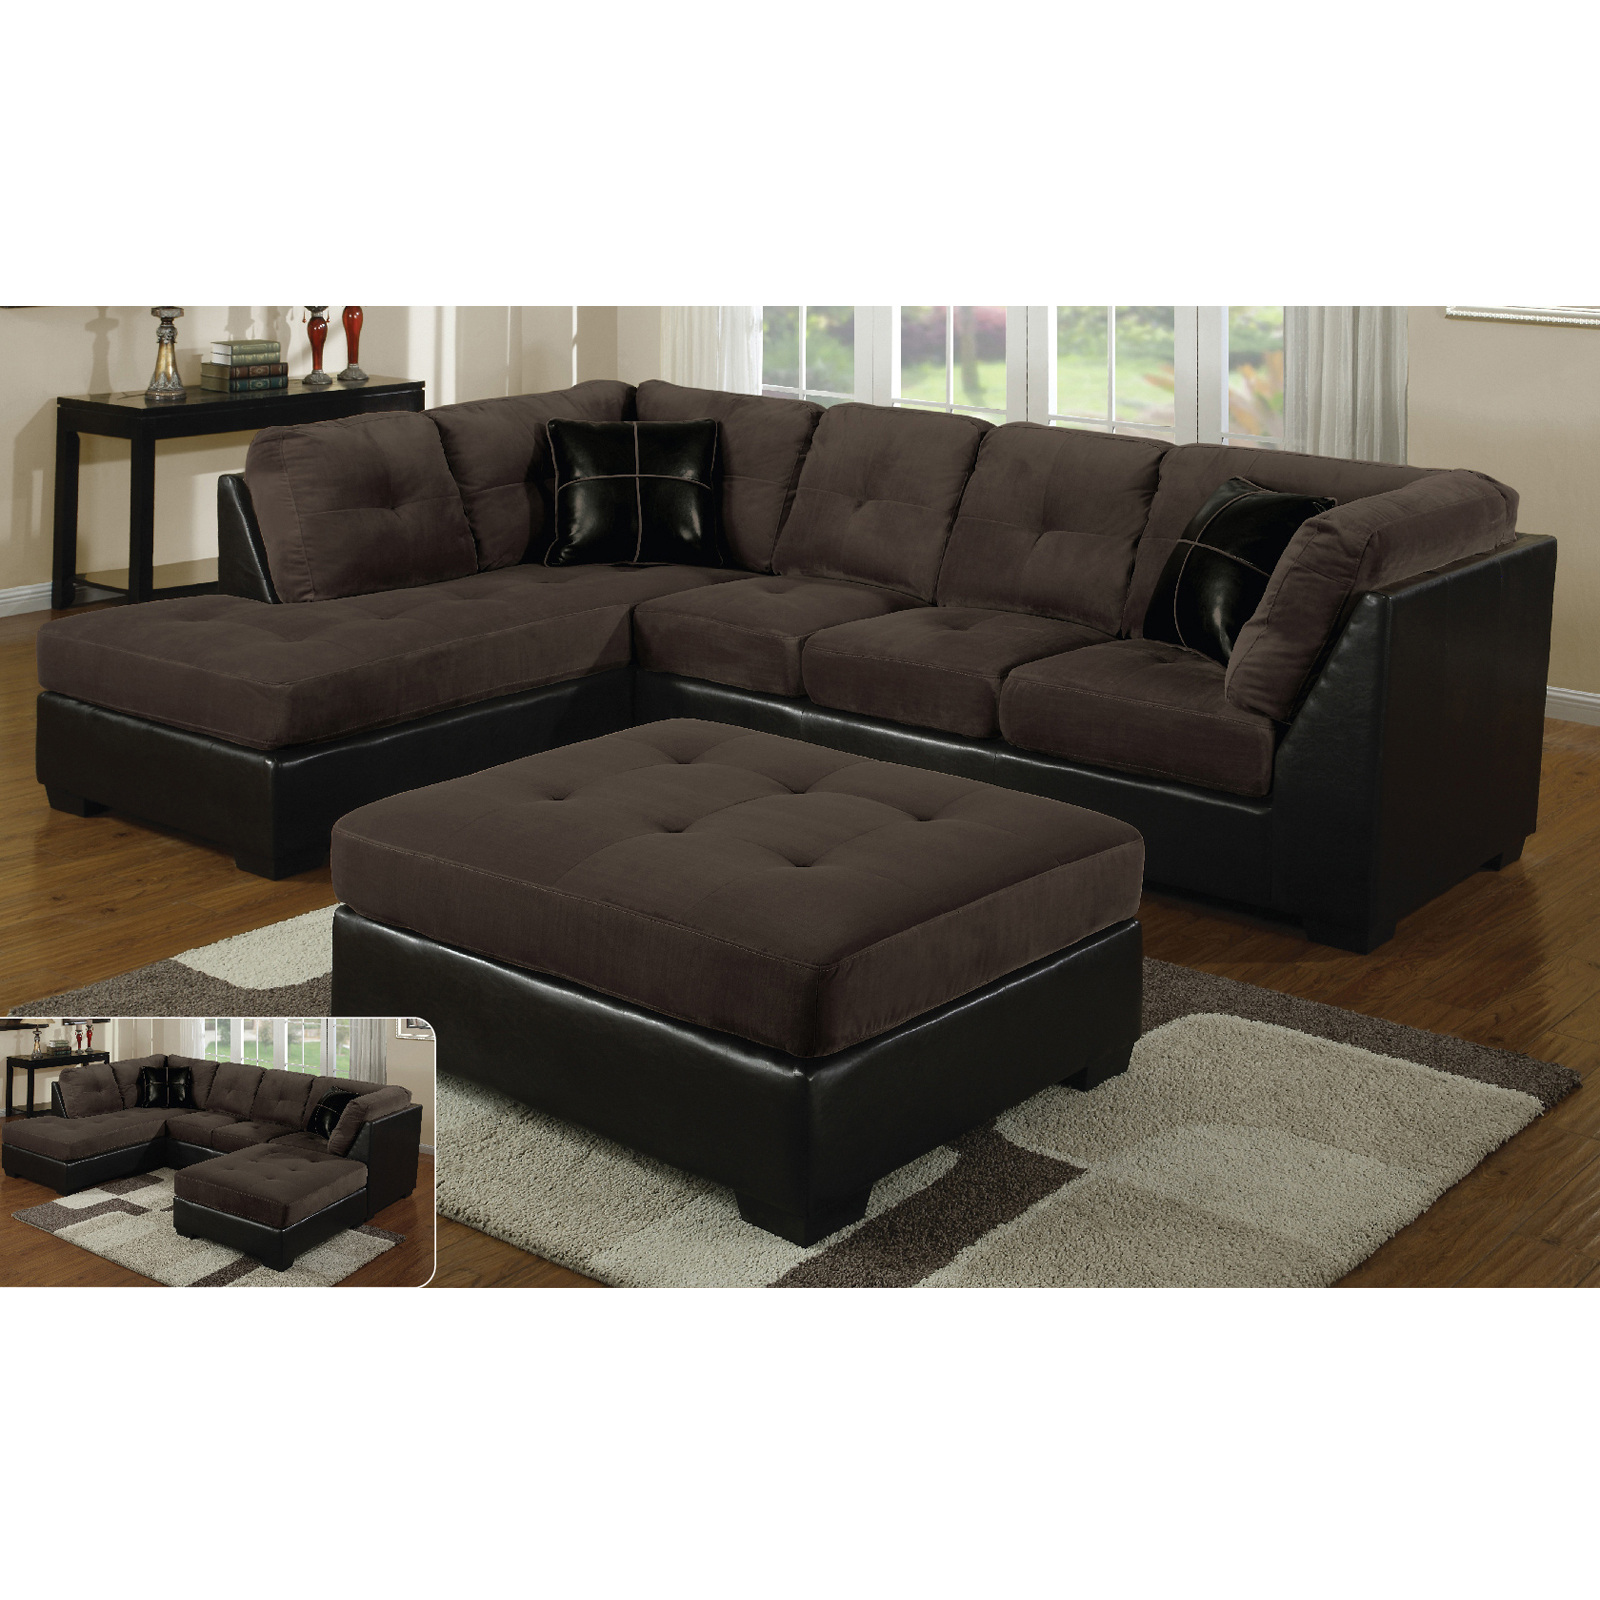 Hannah Right Sectional Sofas Throughout Widely Used E Motion Furniture Right Tufted Chaise Sectional (View 4 of 25)